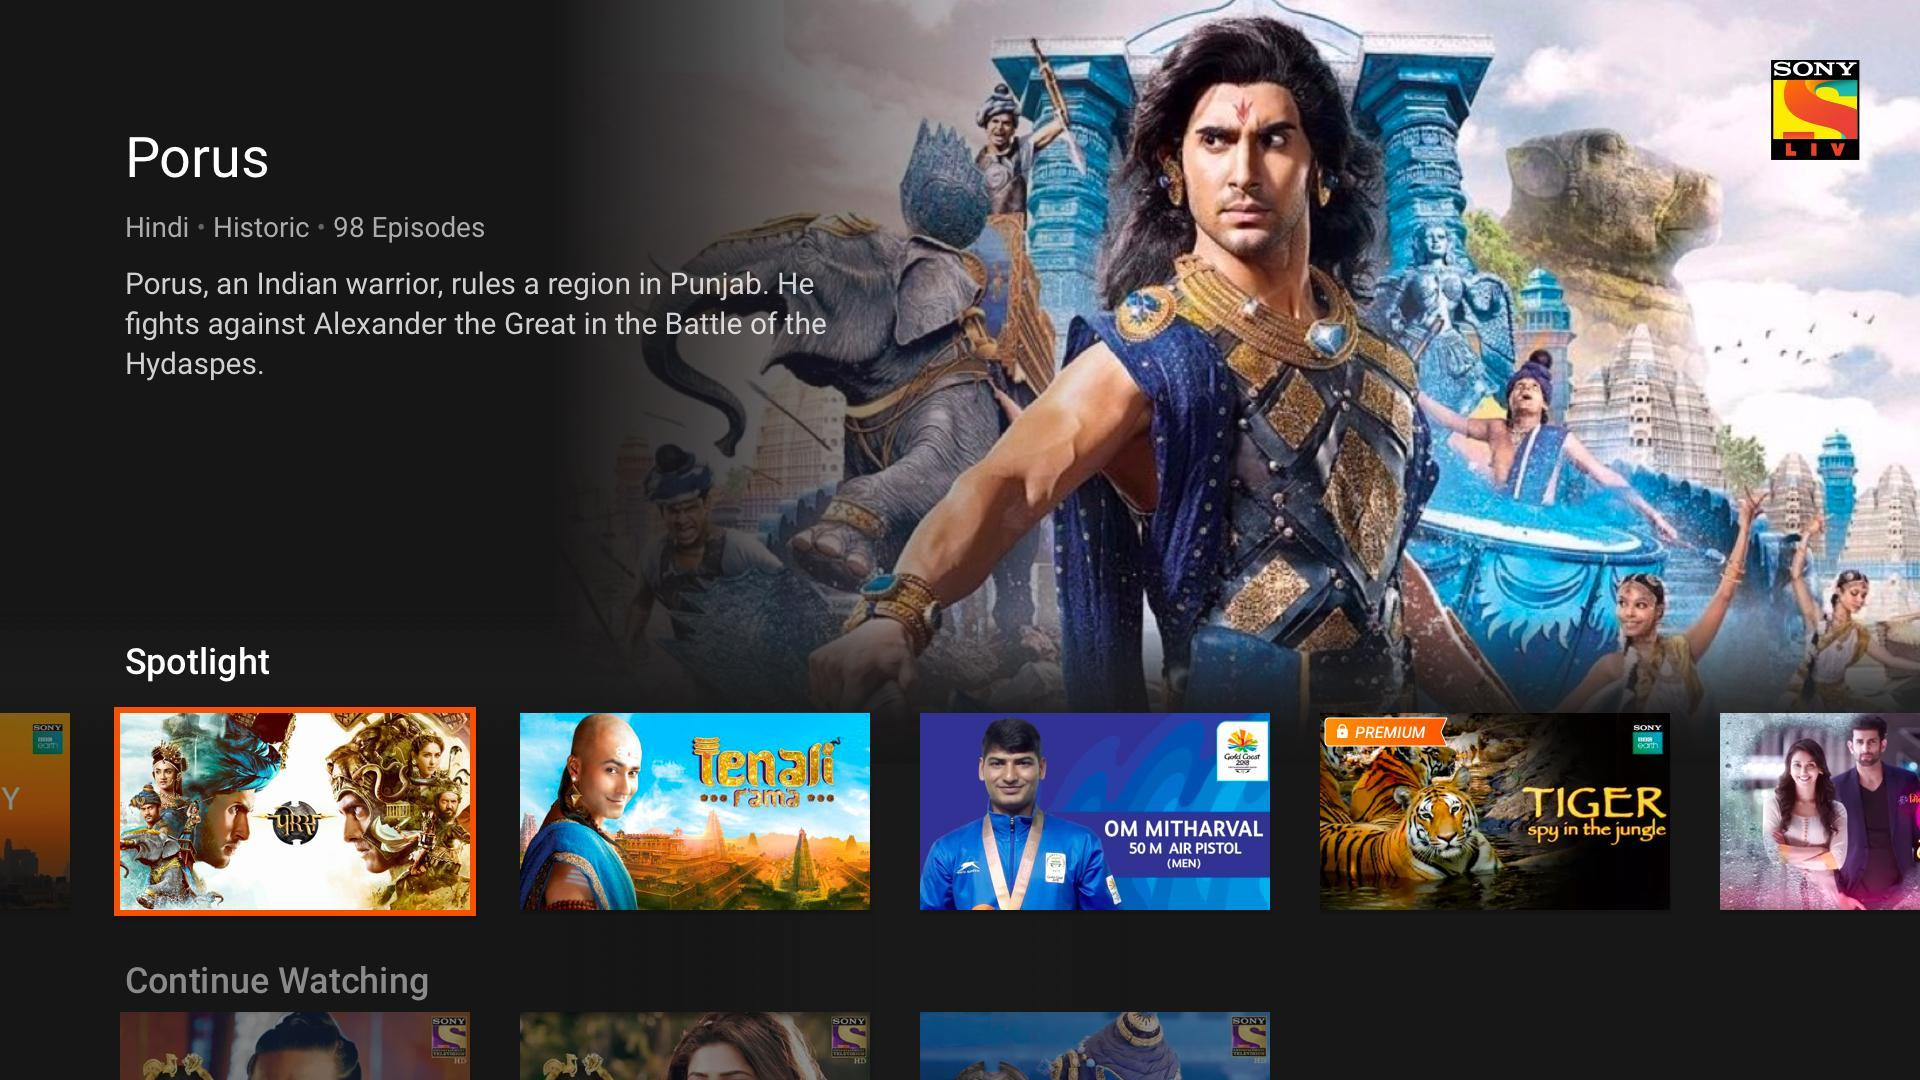 SonyLIV - TV Shows, Movies & Live Sports Online TV for